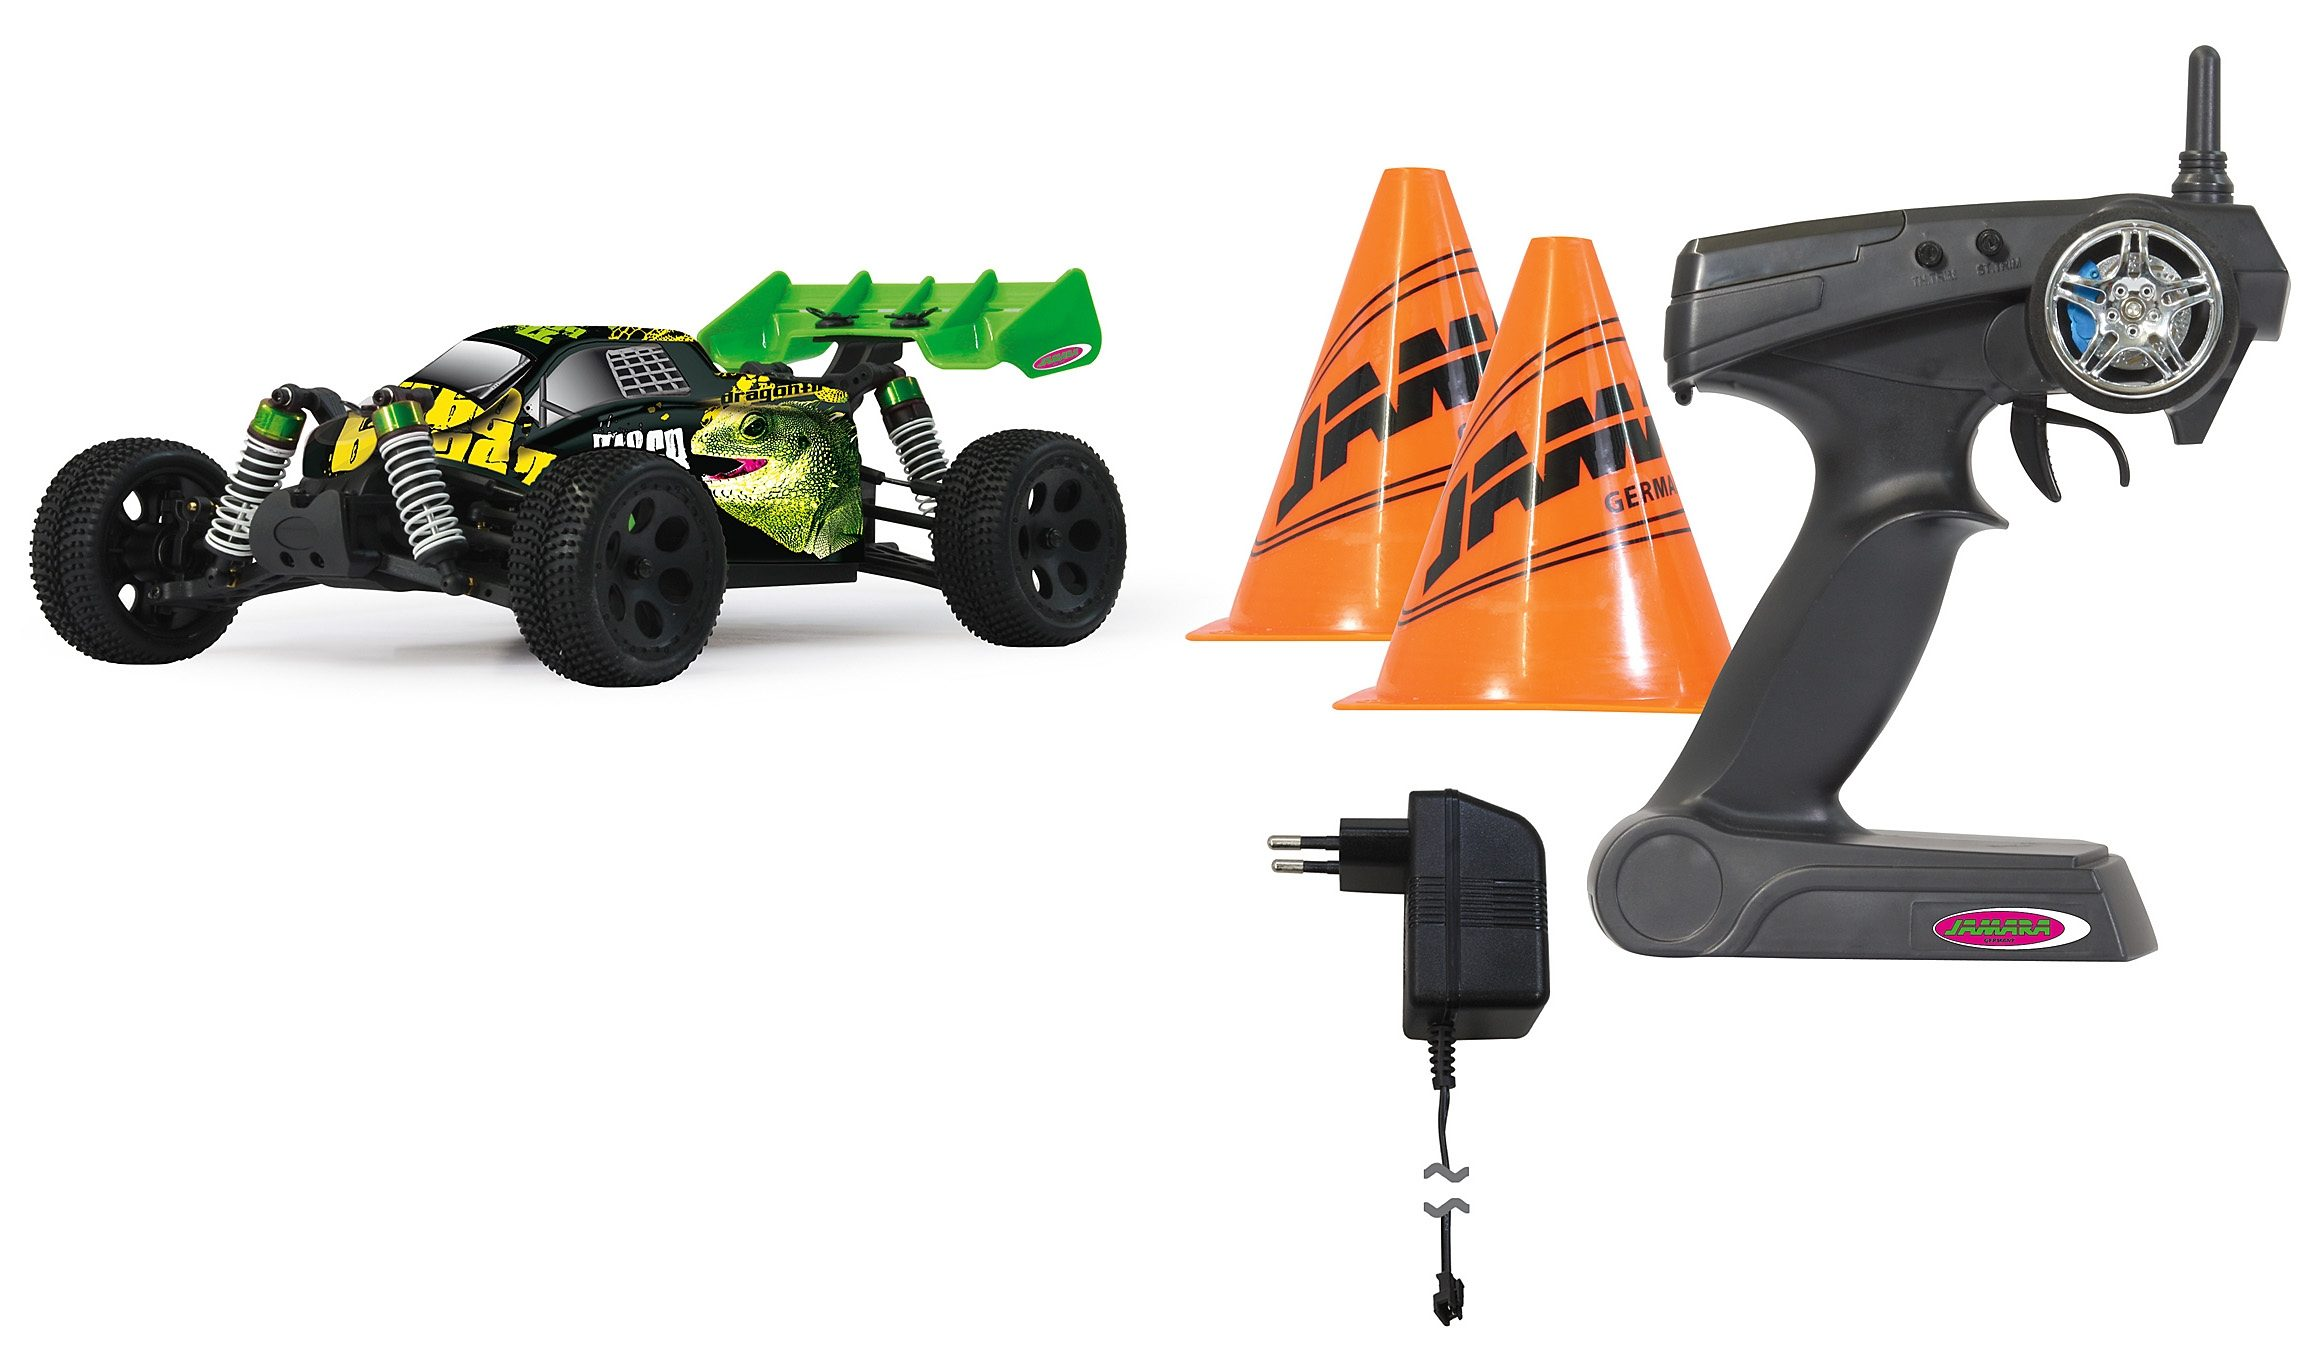 JAMARA RC Komplett Set Buggy, »Z18 CR The Beast«